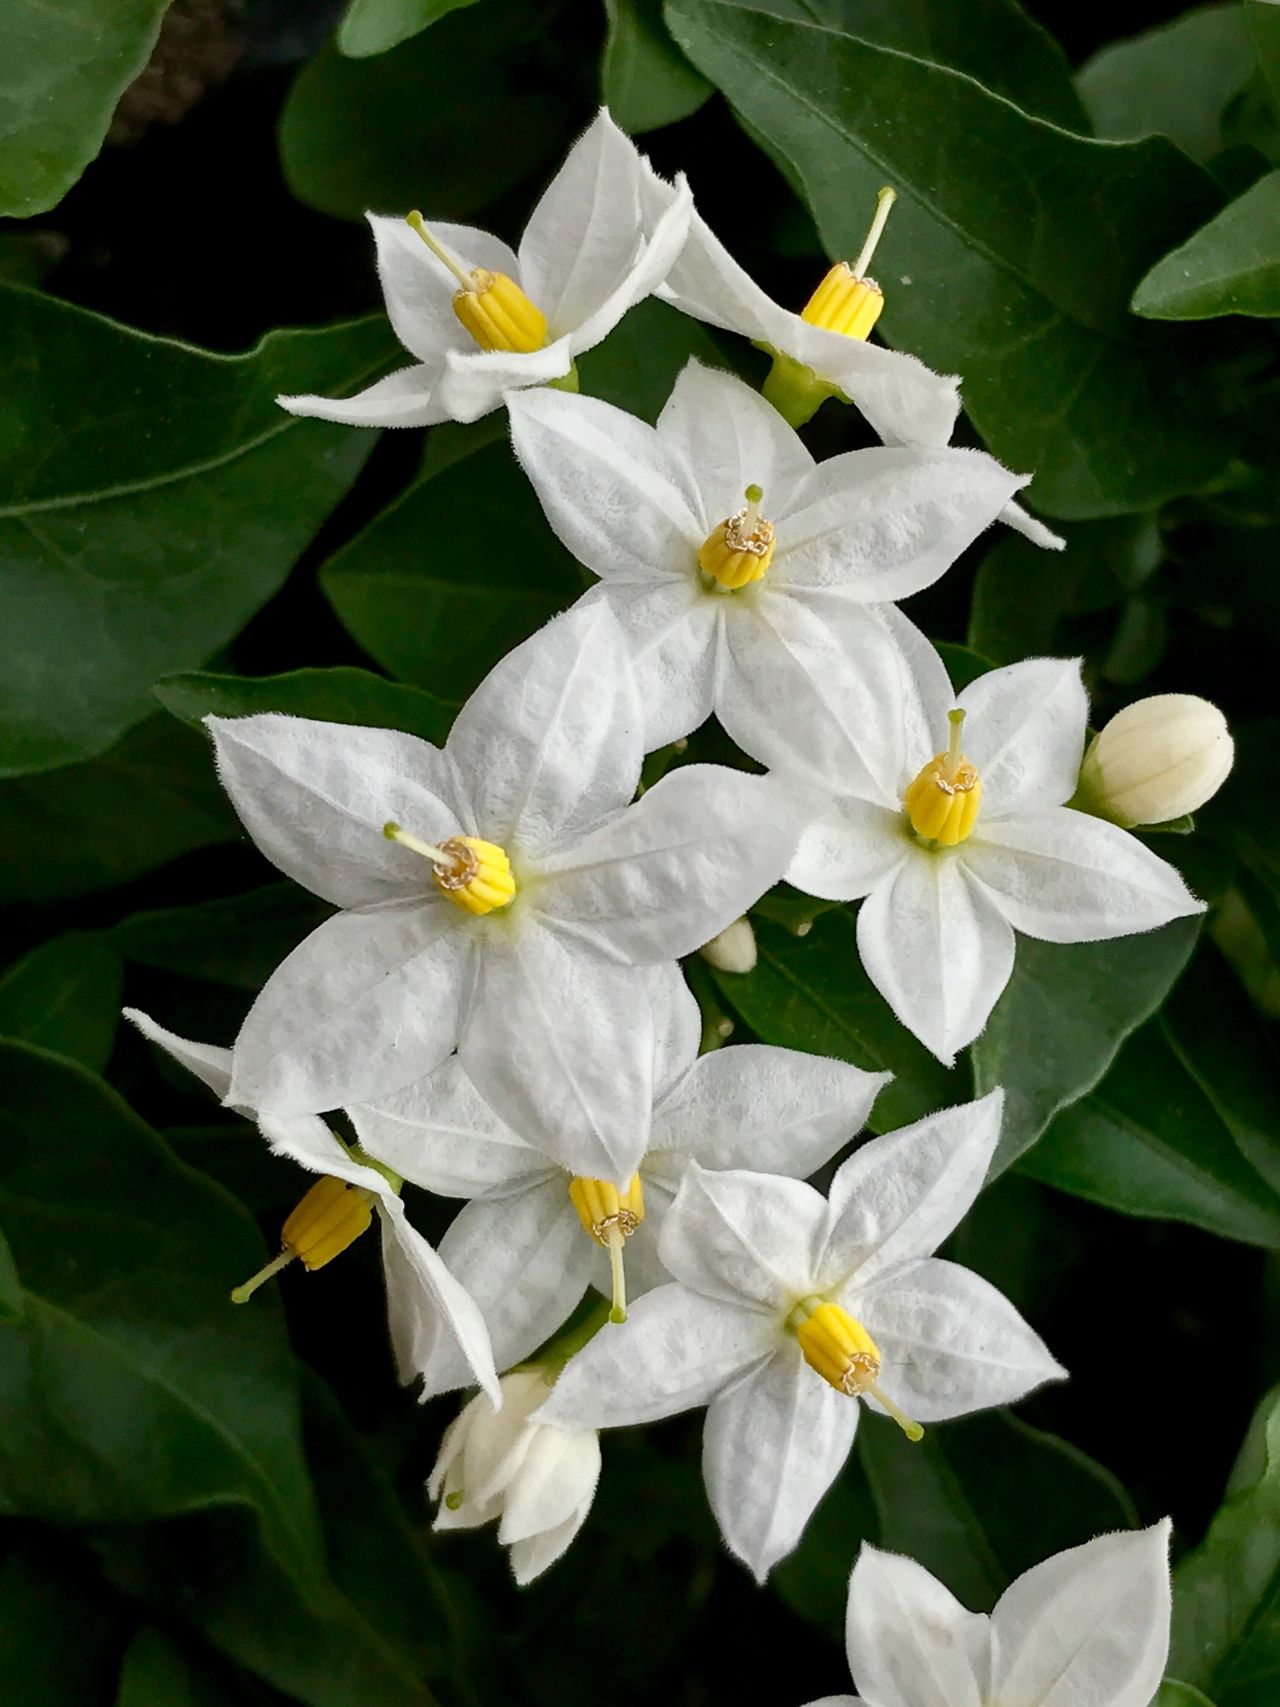 Flower Petal Flower Head Fragility Beauty In Nature Growth White Color Nature Freshness Day Blooming Plant No People Close-up Outdoors Leaf Periwinkle Jasmine Flower Jasmine